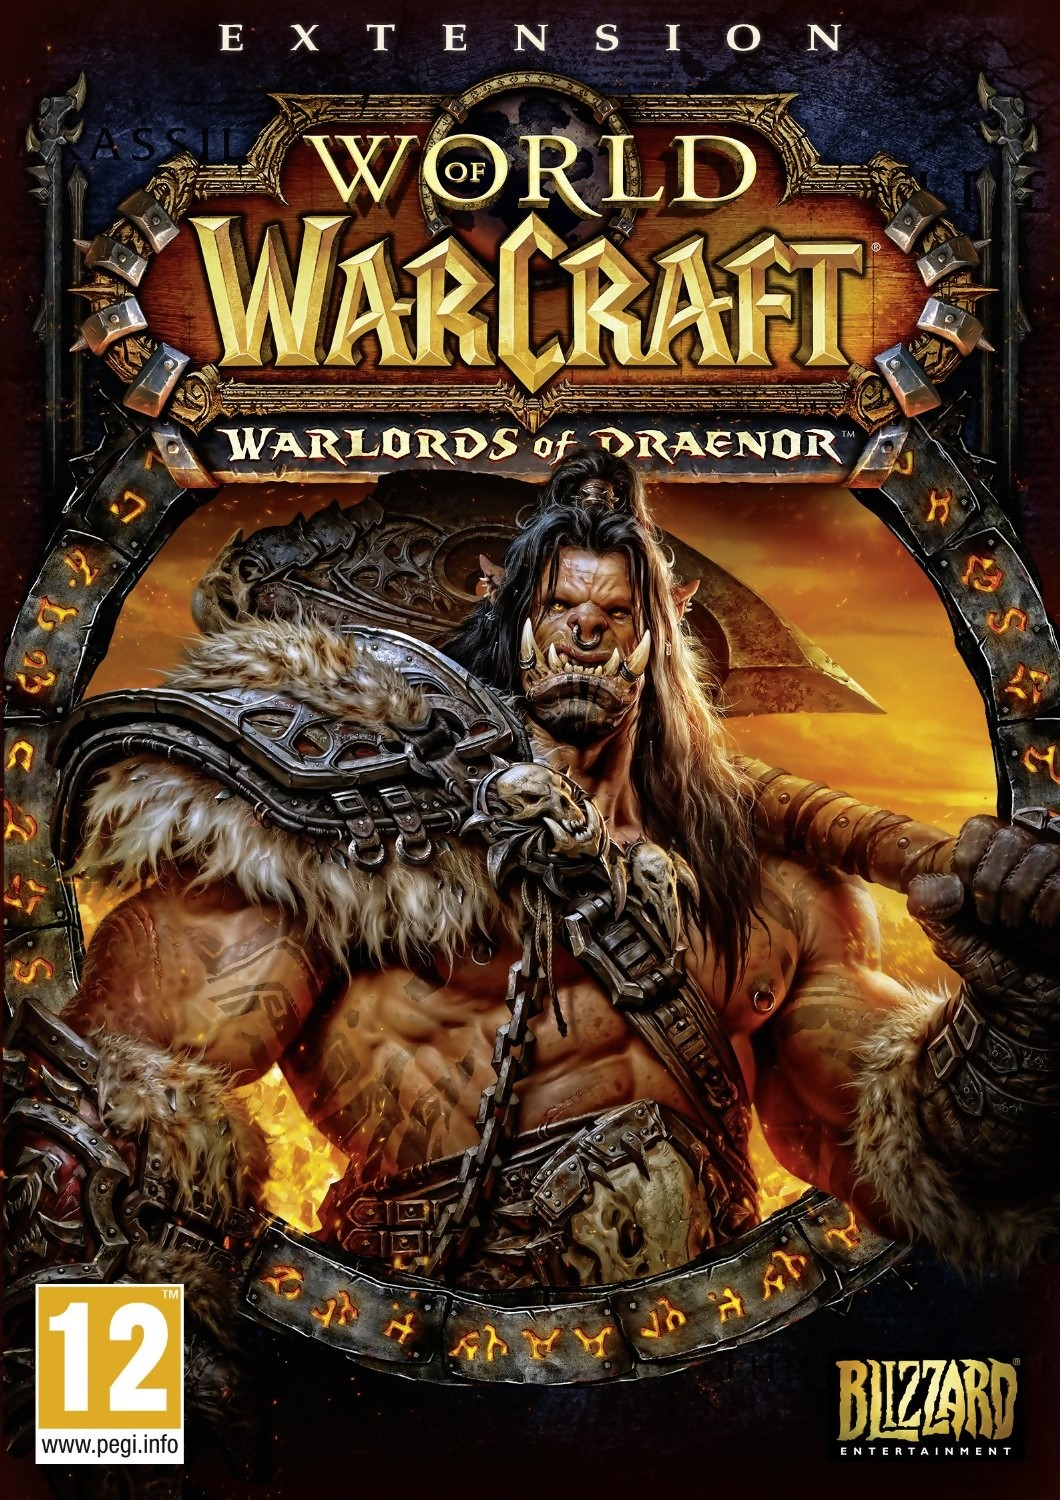 world of warcraft dating sites When many people think of online dating, they think of all the world of warcraft addicts and goth kids from high school getting together online trying to get dates.